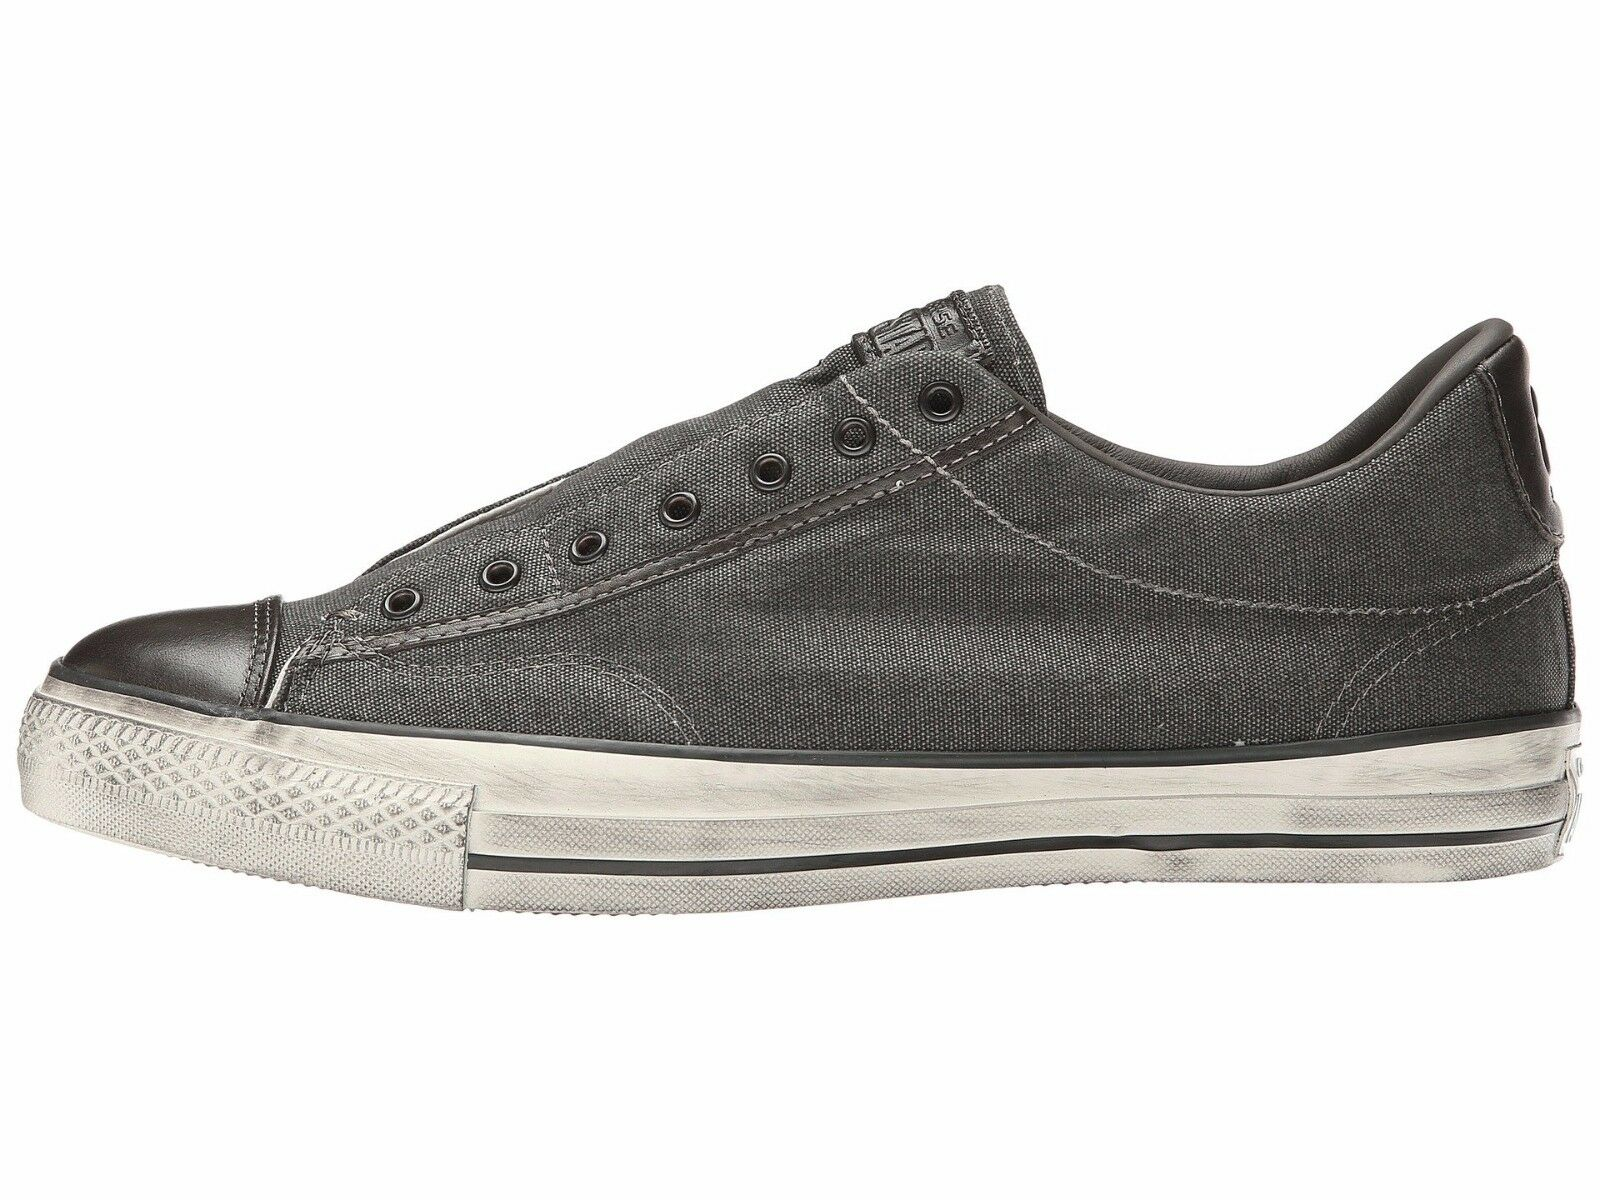 New Converse John Varvatos Chuck Taylor All Star Vintage Slip-On Homme sz 6.5